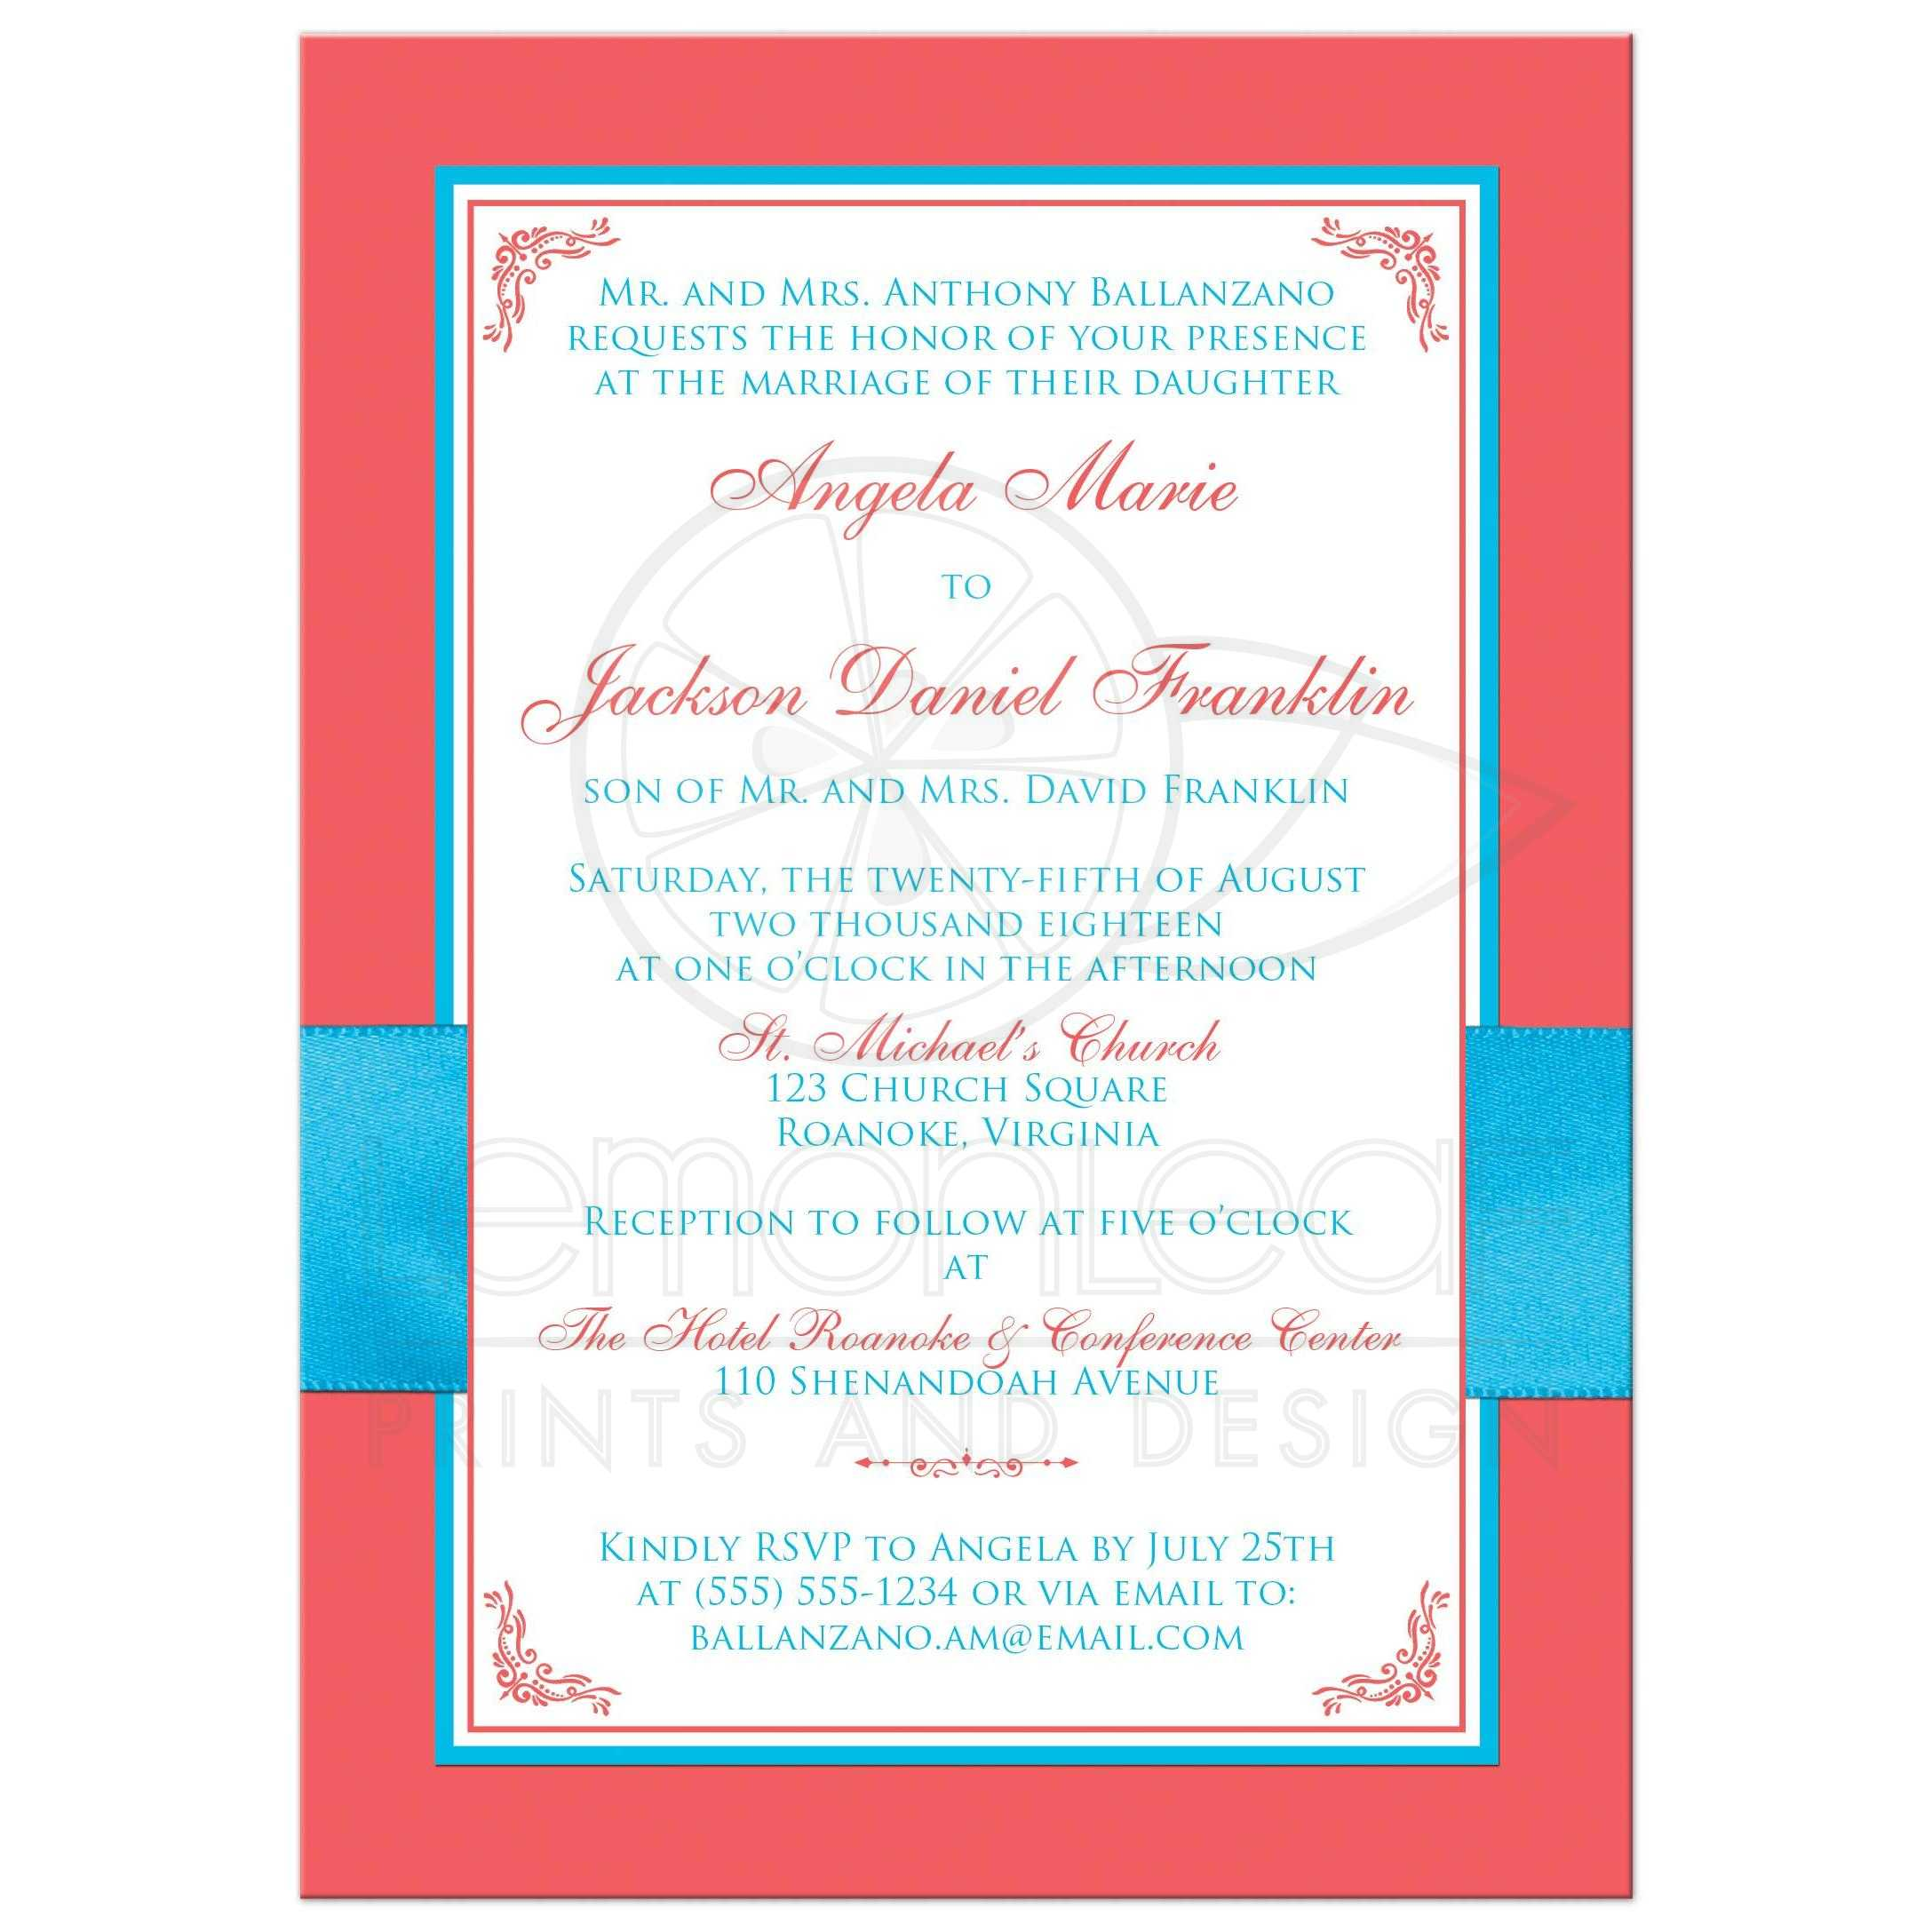 Coral And White Wedding Invitations: Malibu Blue, Coral, And White Floral Wedding Invitation